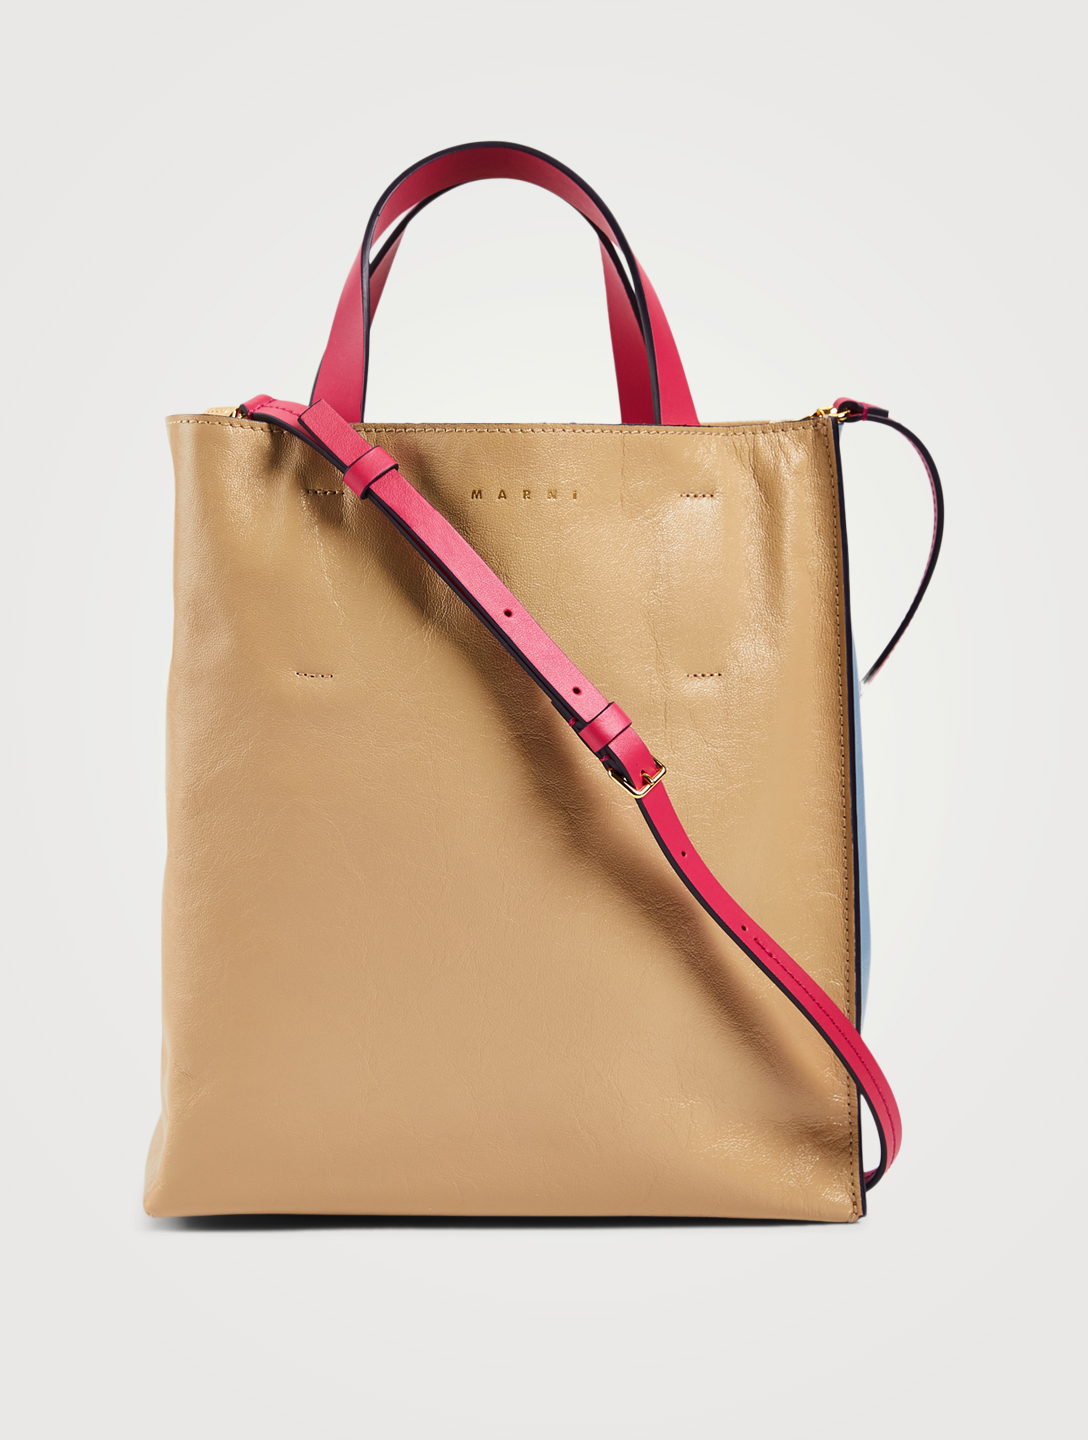 MARNI Small Museo Leather Bag Women's Multi